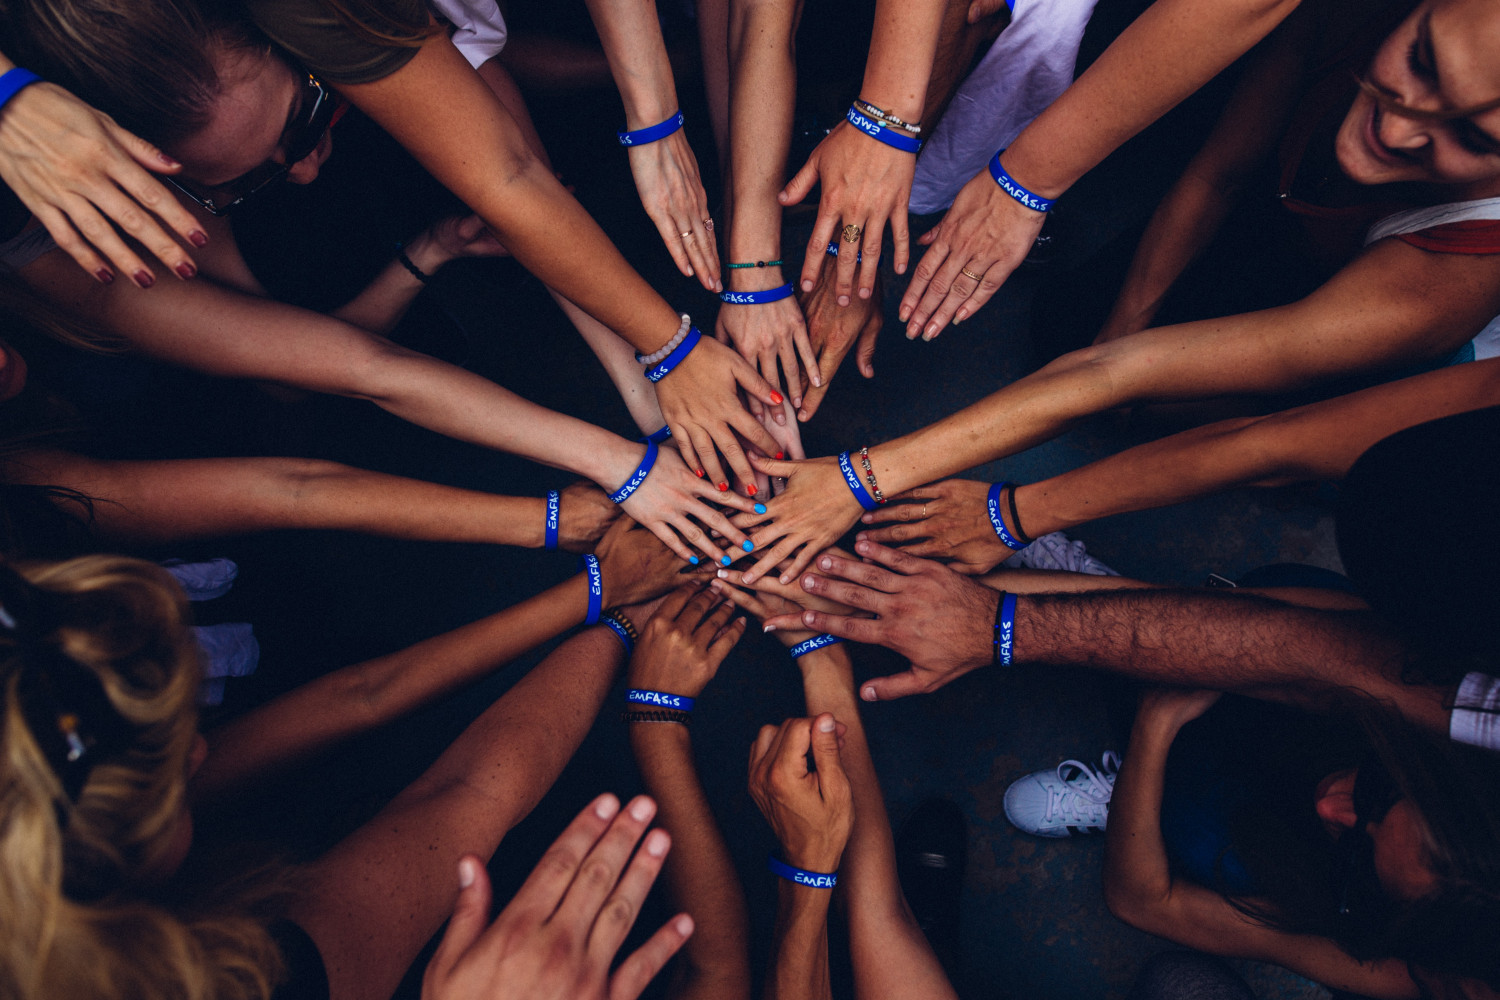 Hands in a circle